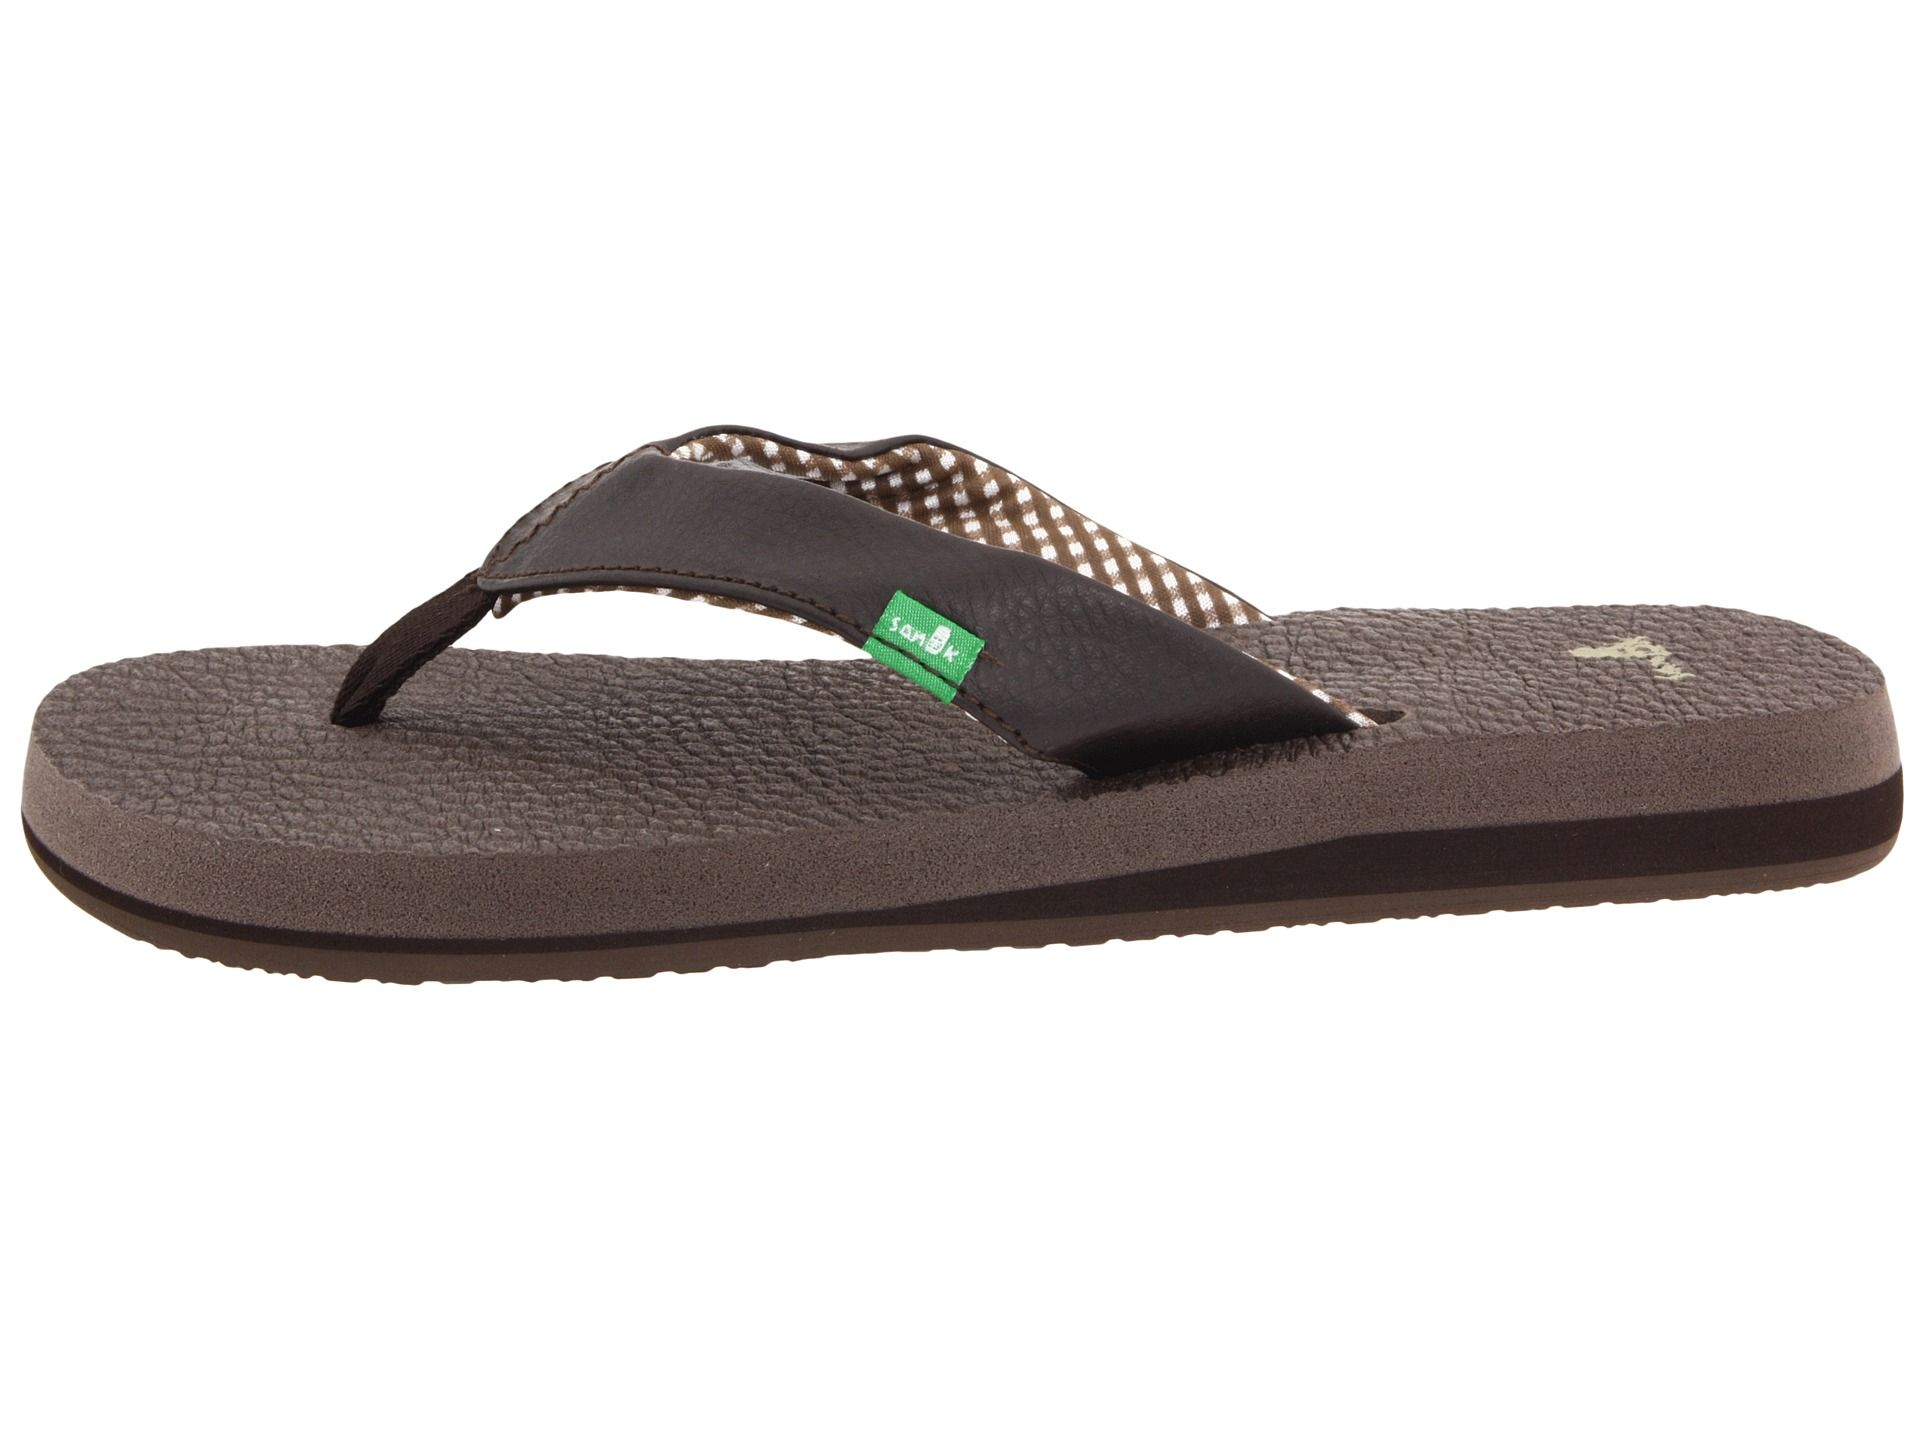 flops are slippersmens on for a the just most is cloud comfortable men like earth that flip walking comforter slippers flop pin